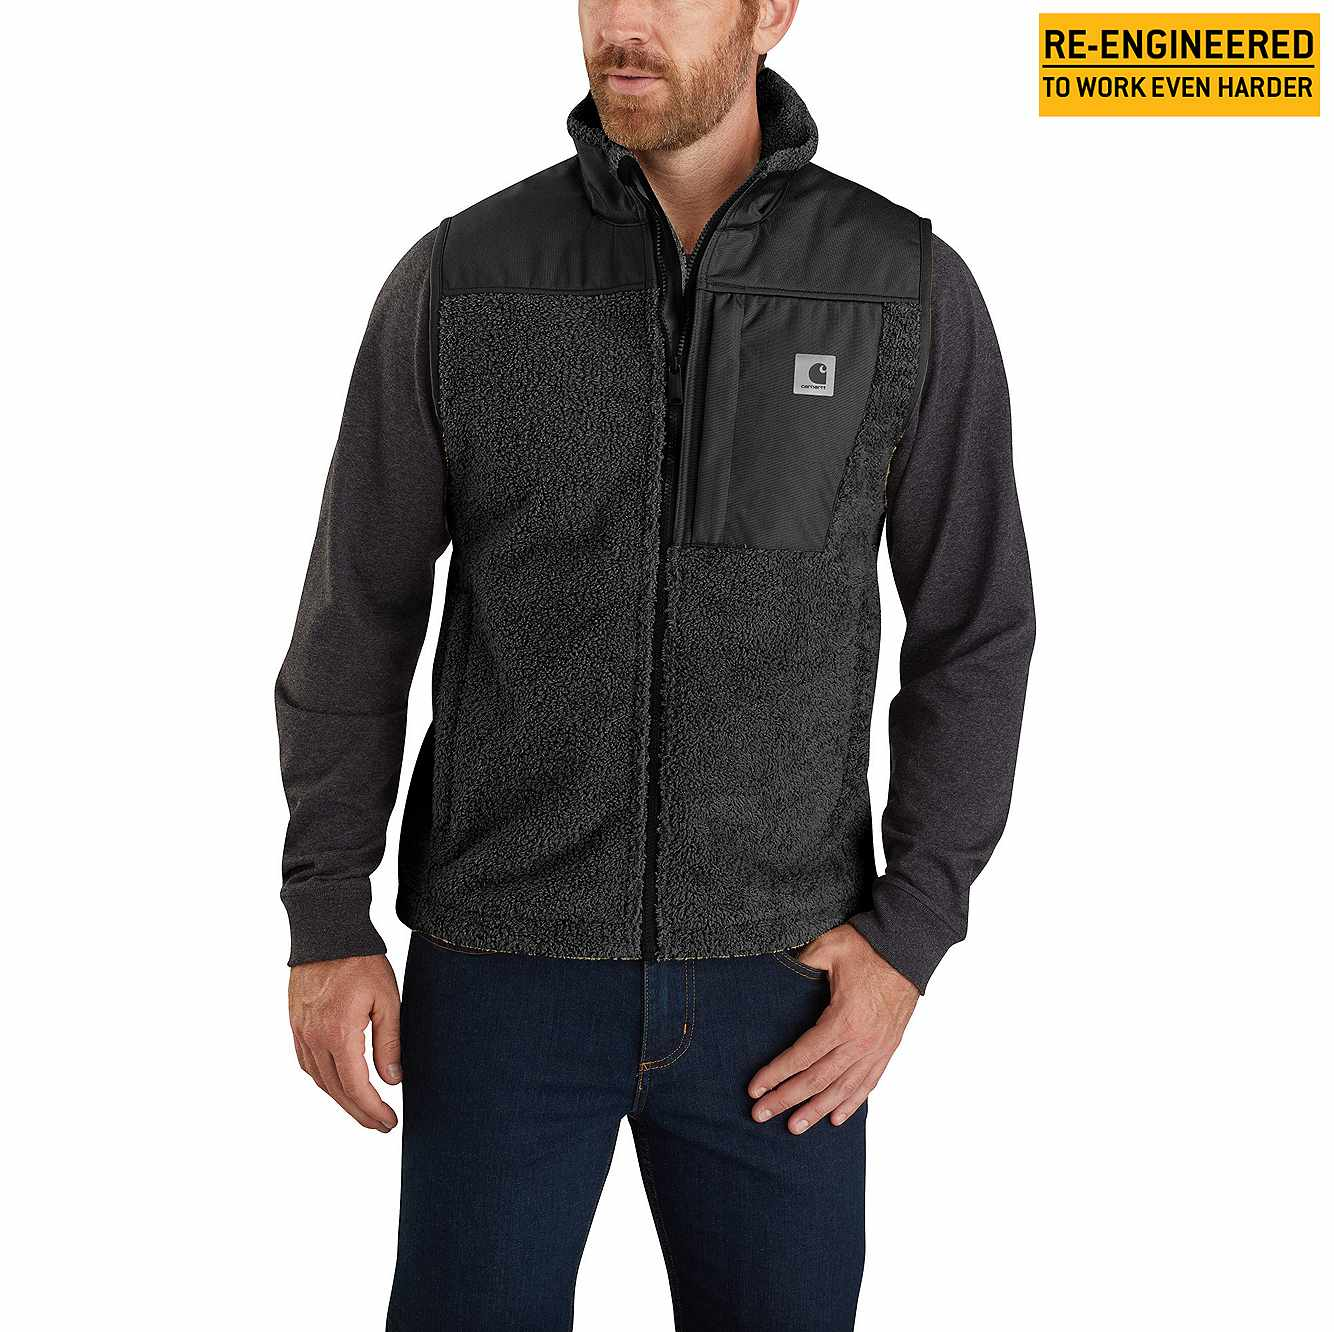 Picture of Carhartt® Yukon Extremes® Wind Fighter® Fleece Vest in Black